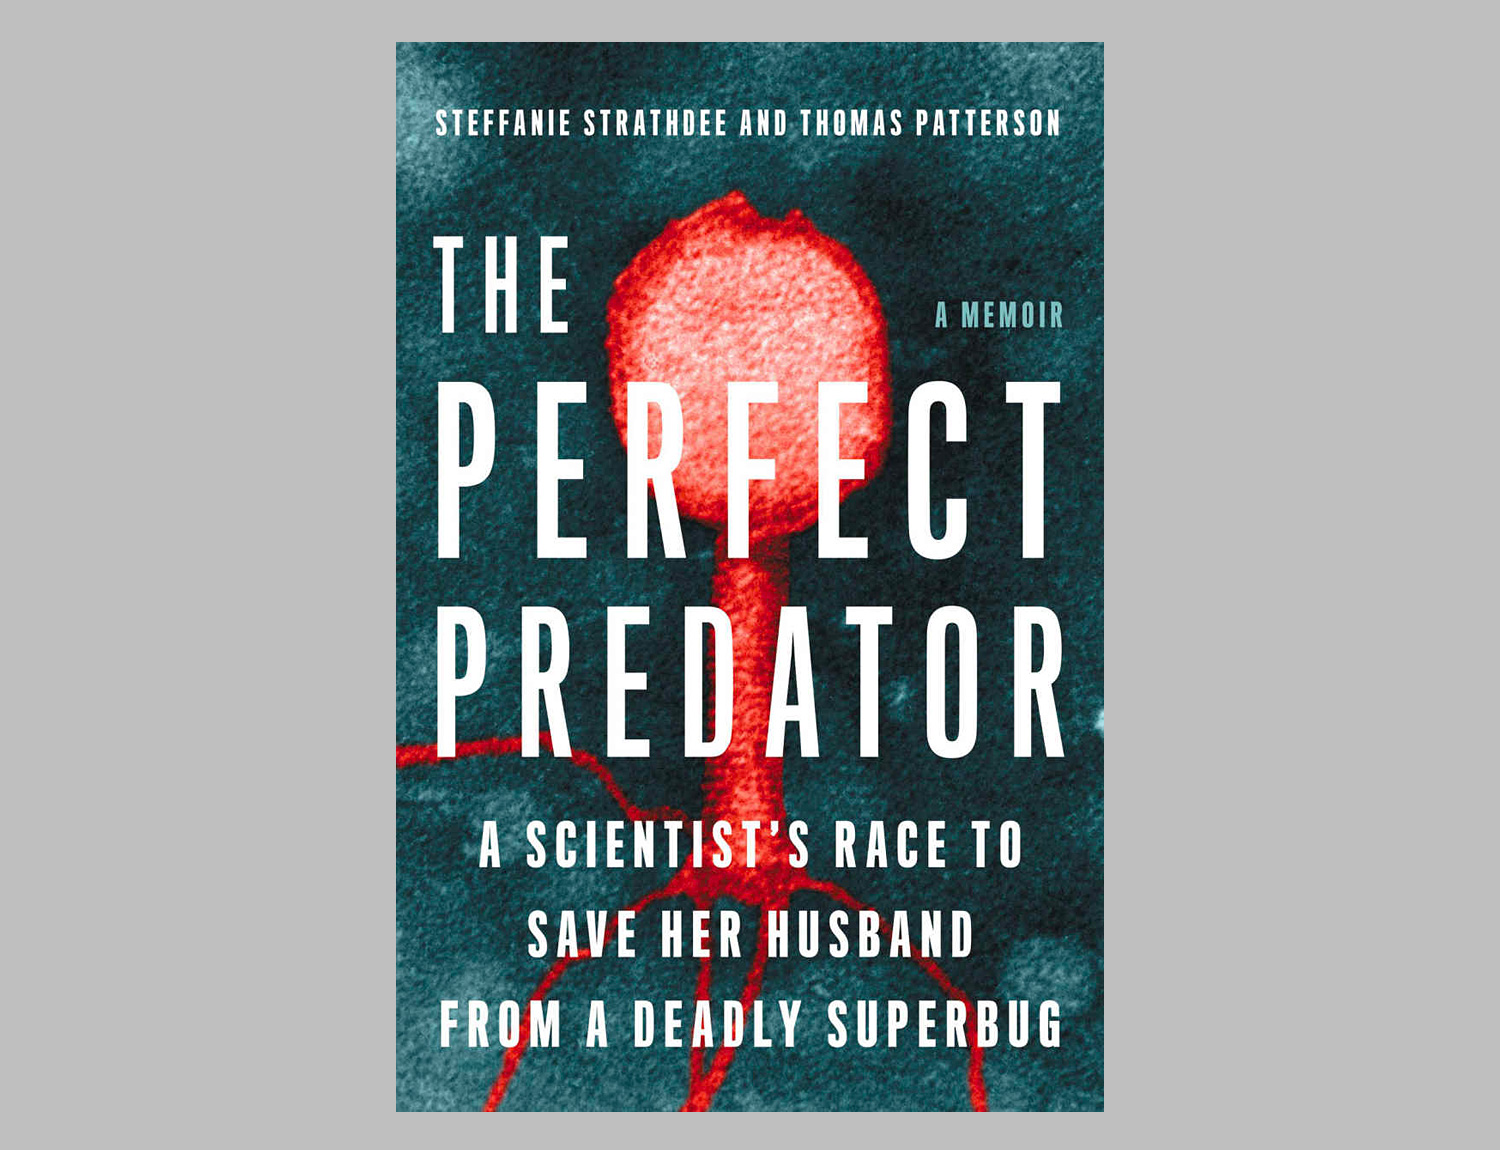 The Perfect Predator: A Scientist's Race to Save Her Husband at werd.com